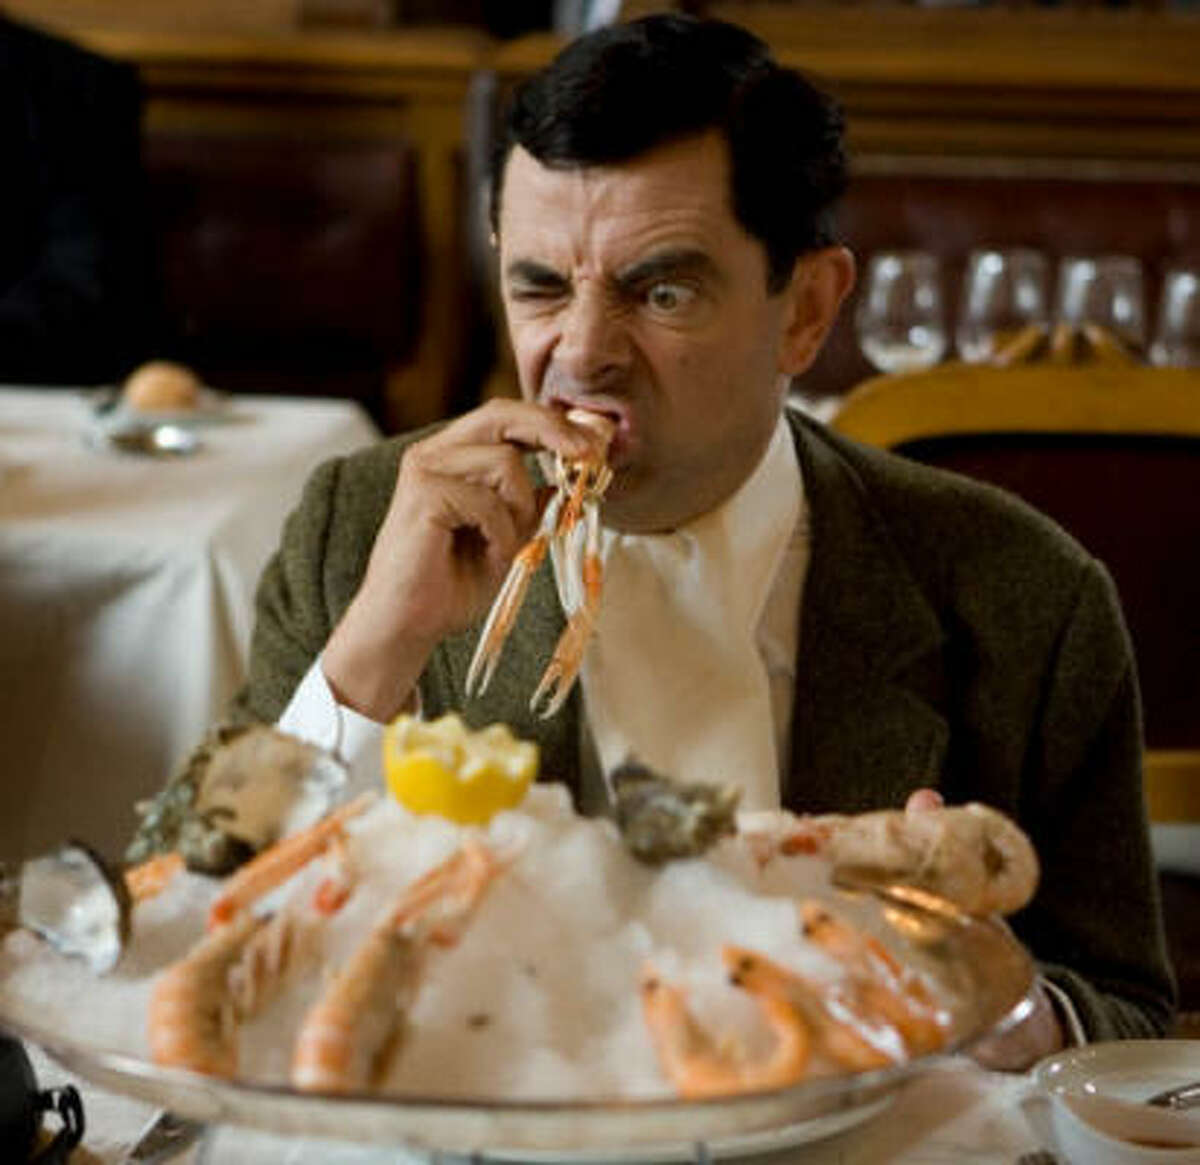 Mr. Bean samples fine French cuisine in Mr. Bean's Holiday.